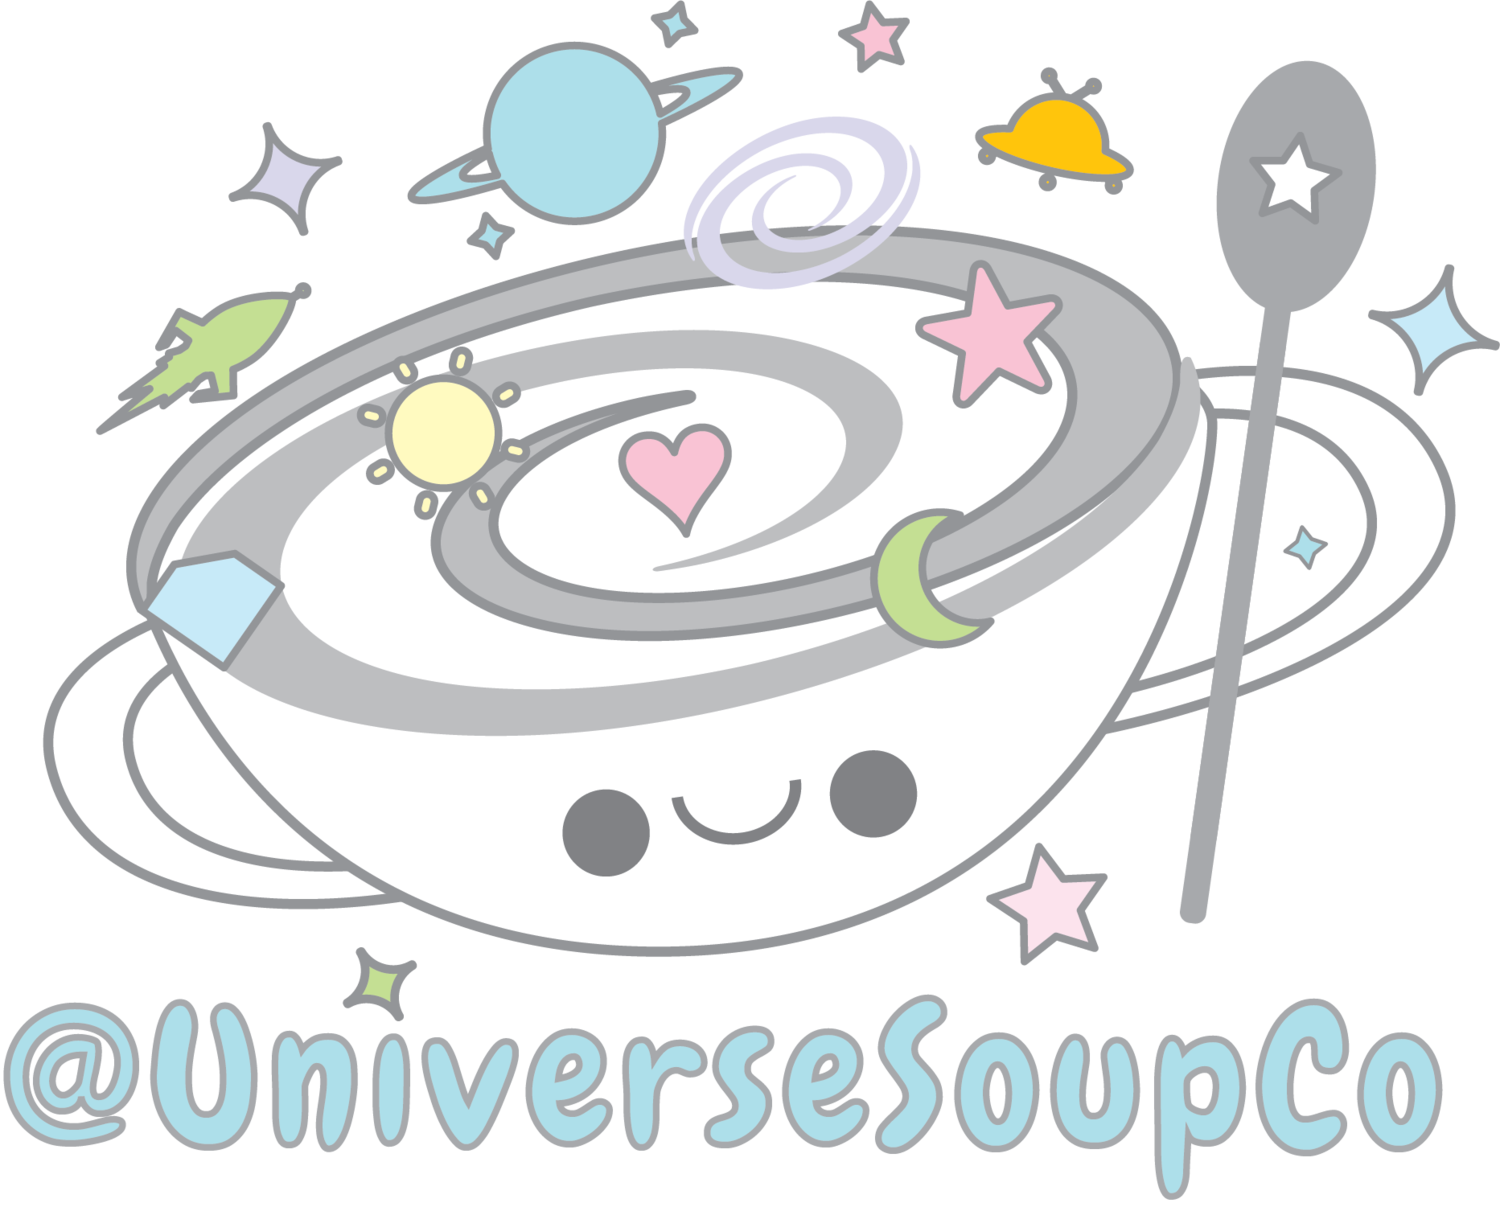 Galaxy clipart space exploration. Our top picks for